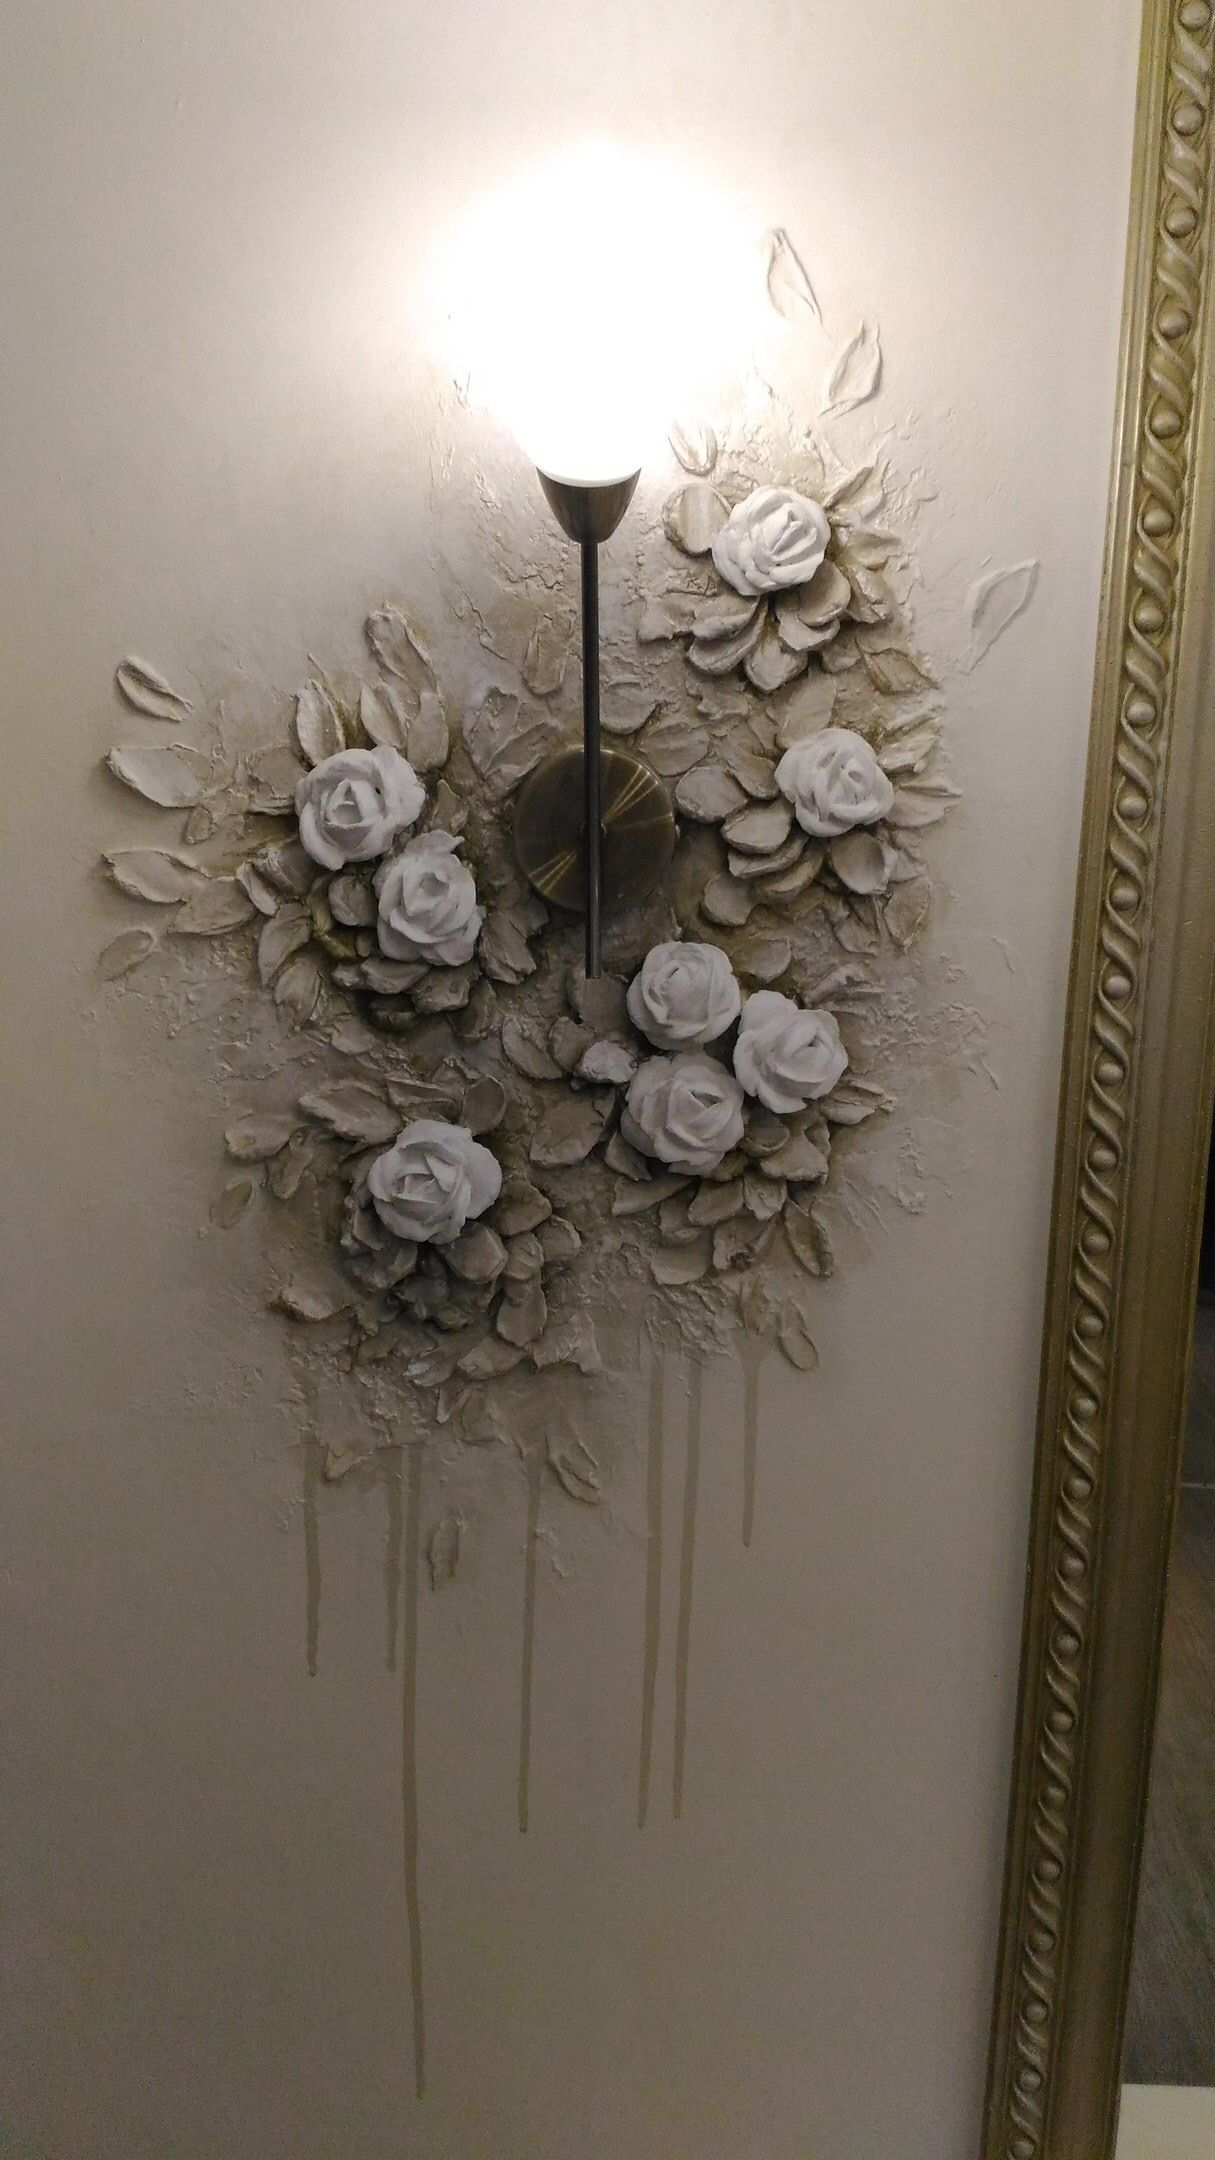 Inspiration For Plaster Mural That Moves Up Stairwell And Around Lighting Plaster Wall Art Plaster Crafts Plaster Art